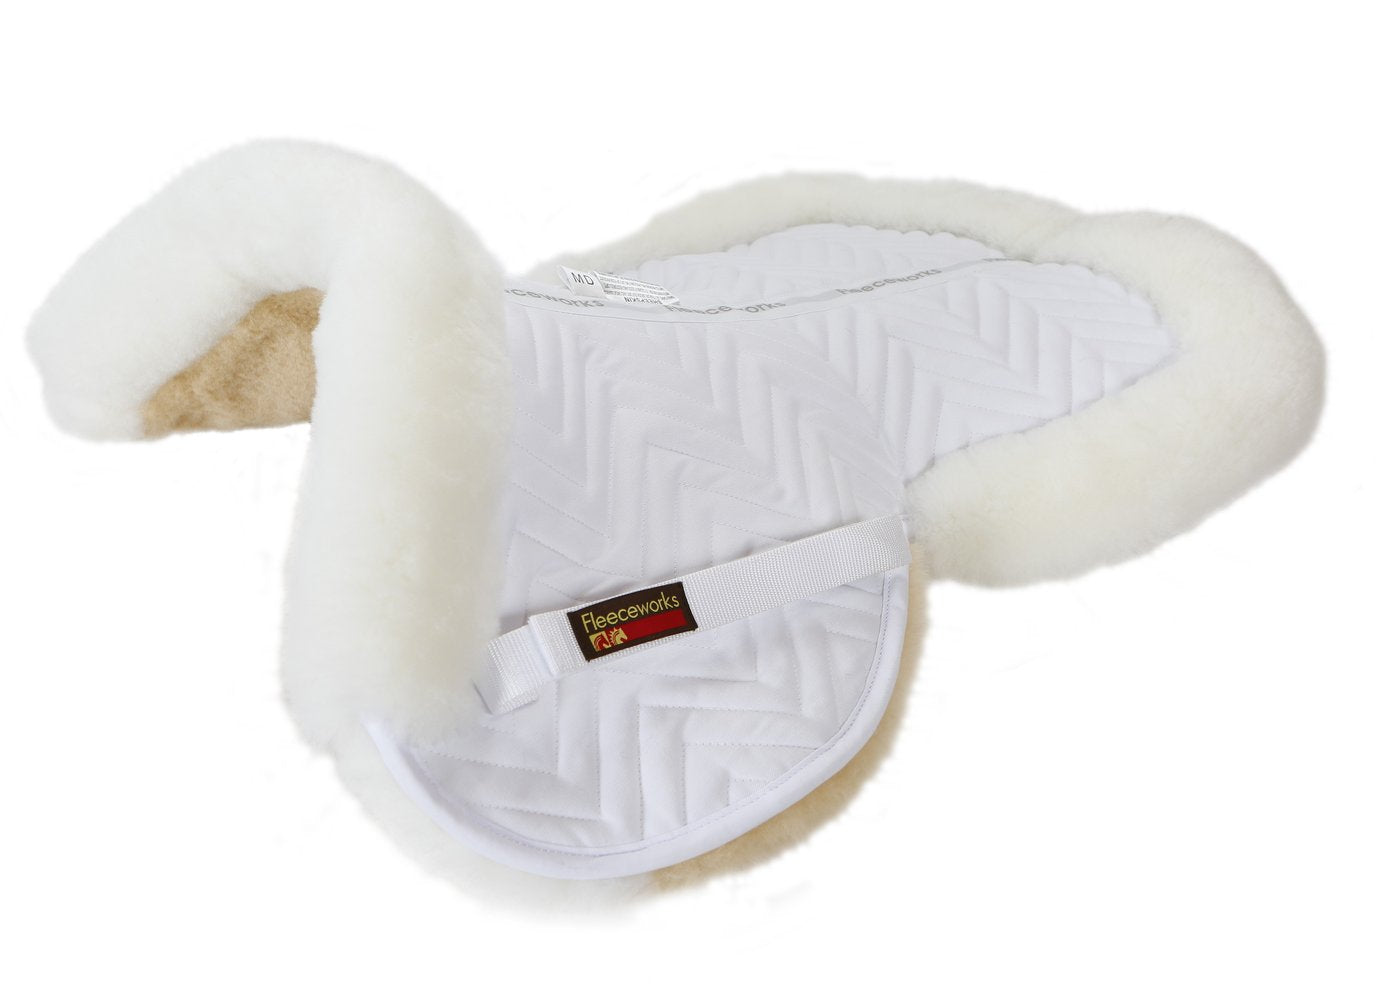 Fleeceworks Sheepskin Classic Half Pad With Rolled Edge